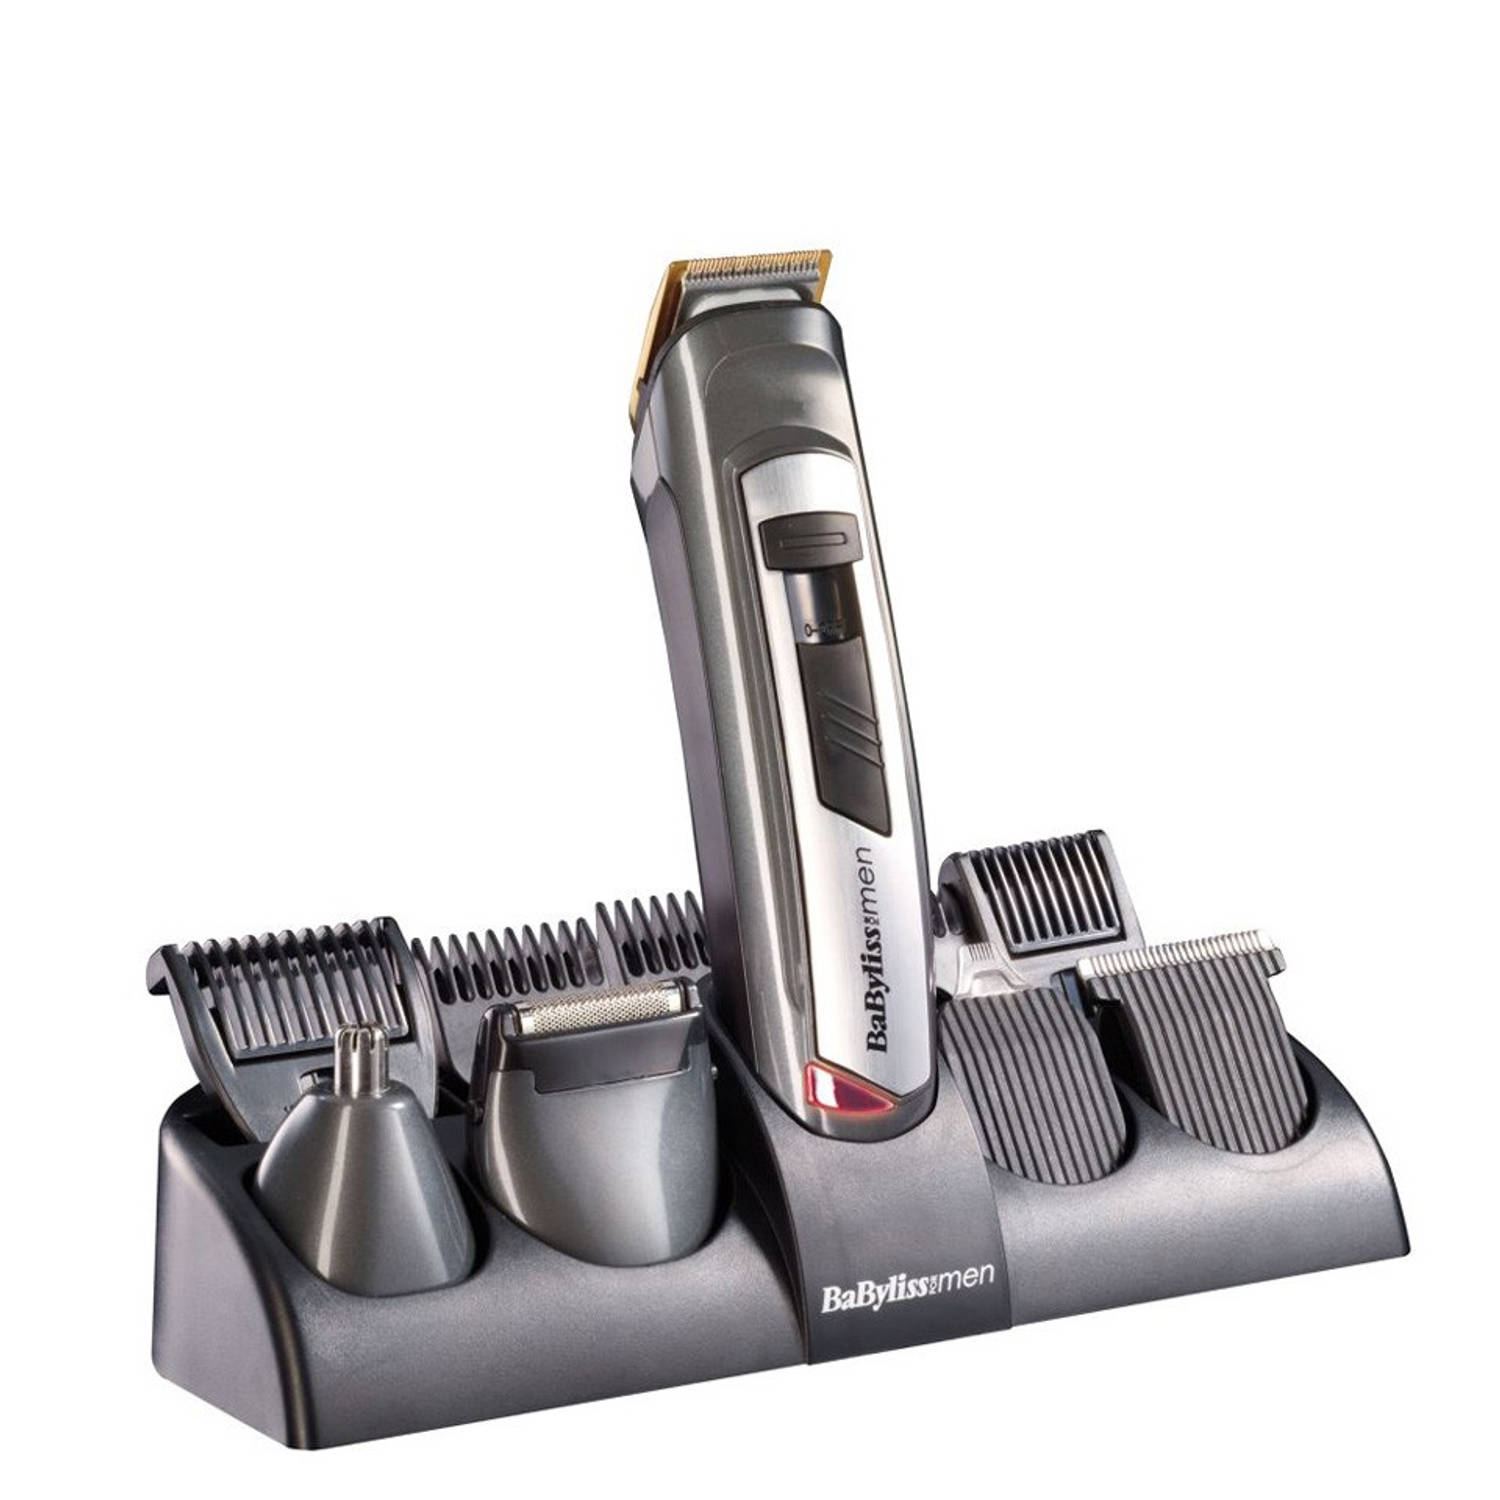 BaByliss multigroomer 10-in-1 E826E